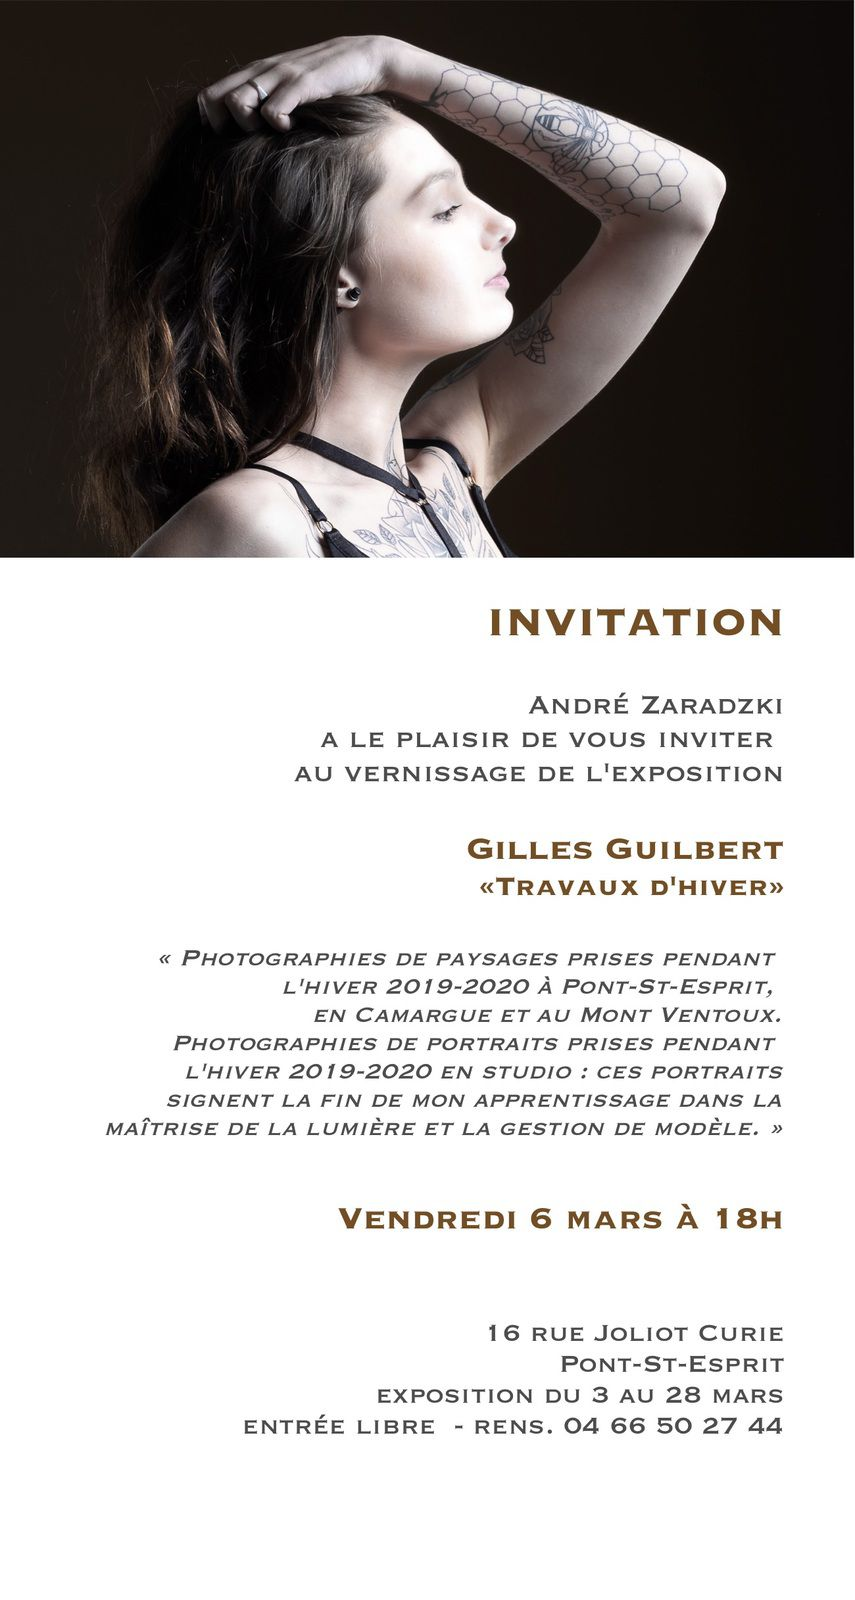 Exposition de mars : Gilles Guilbert photographies